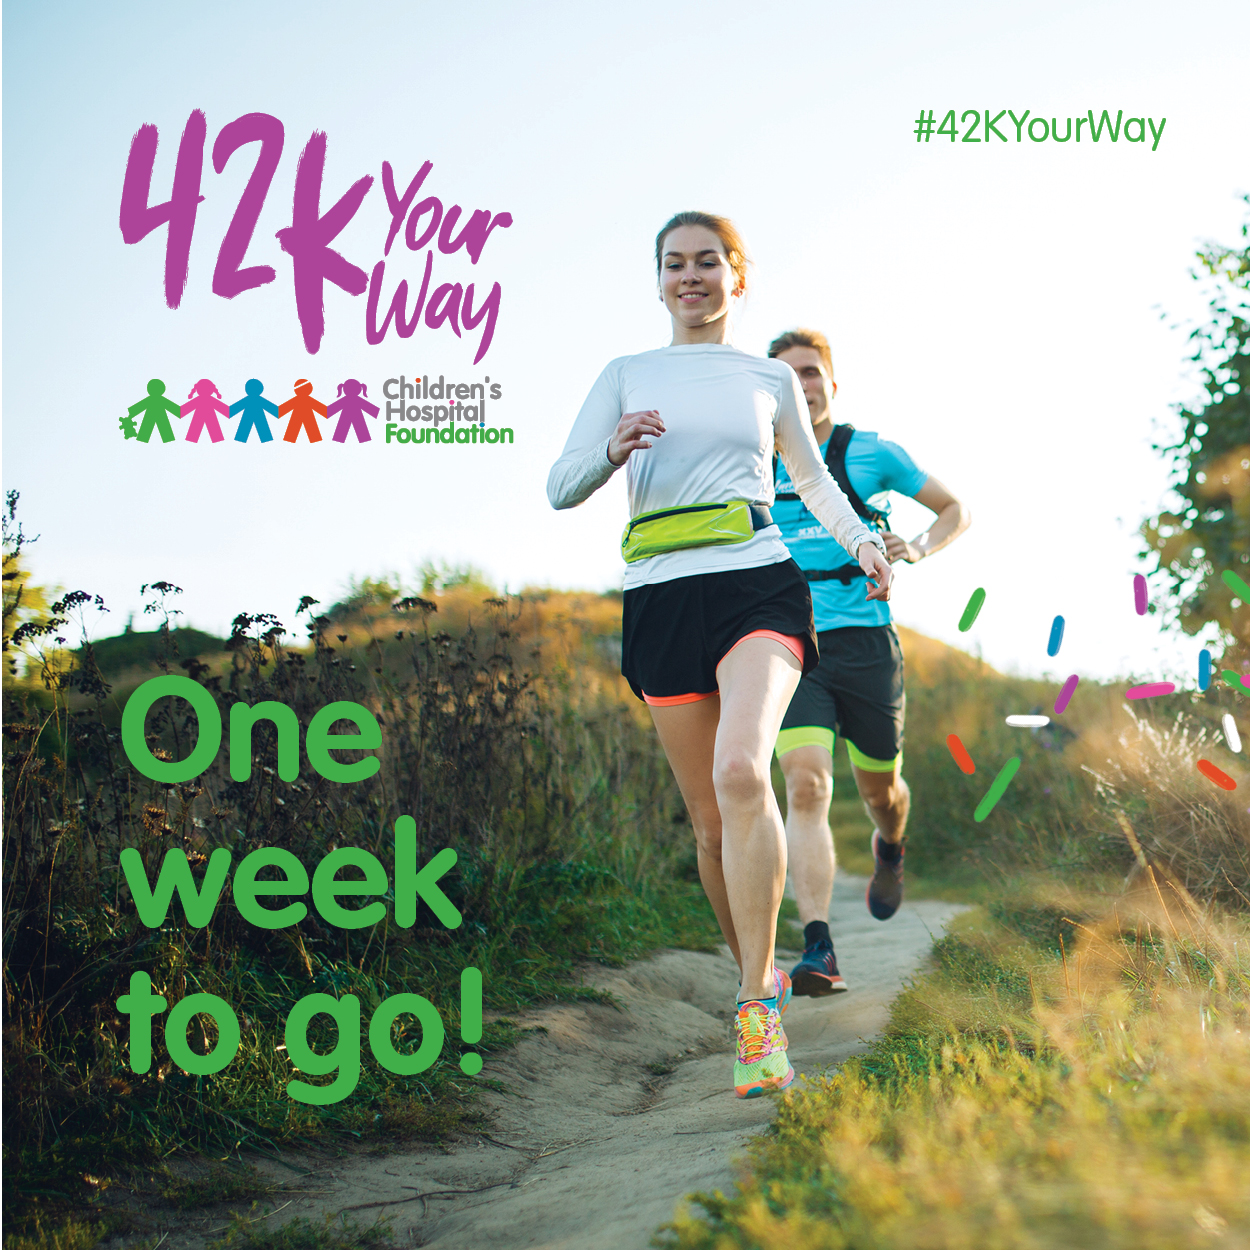 42k Your Way - One Week to Go